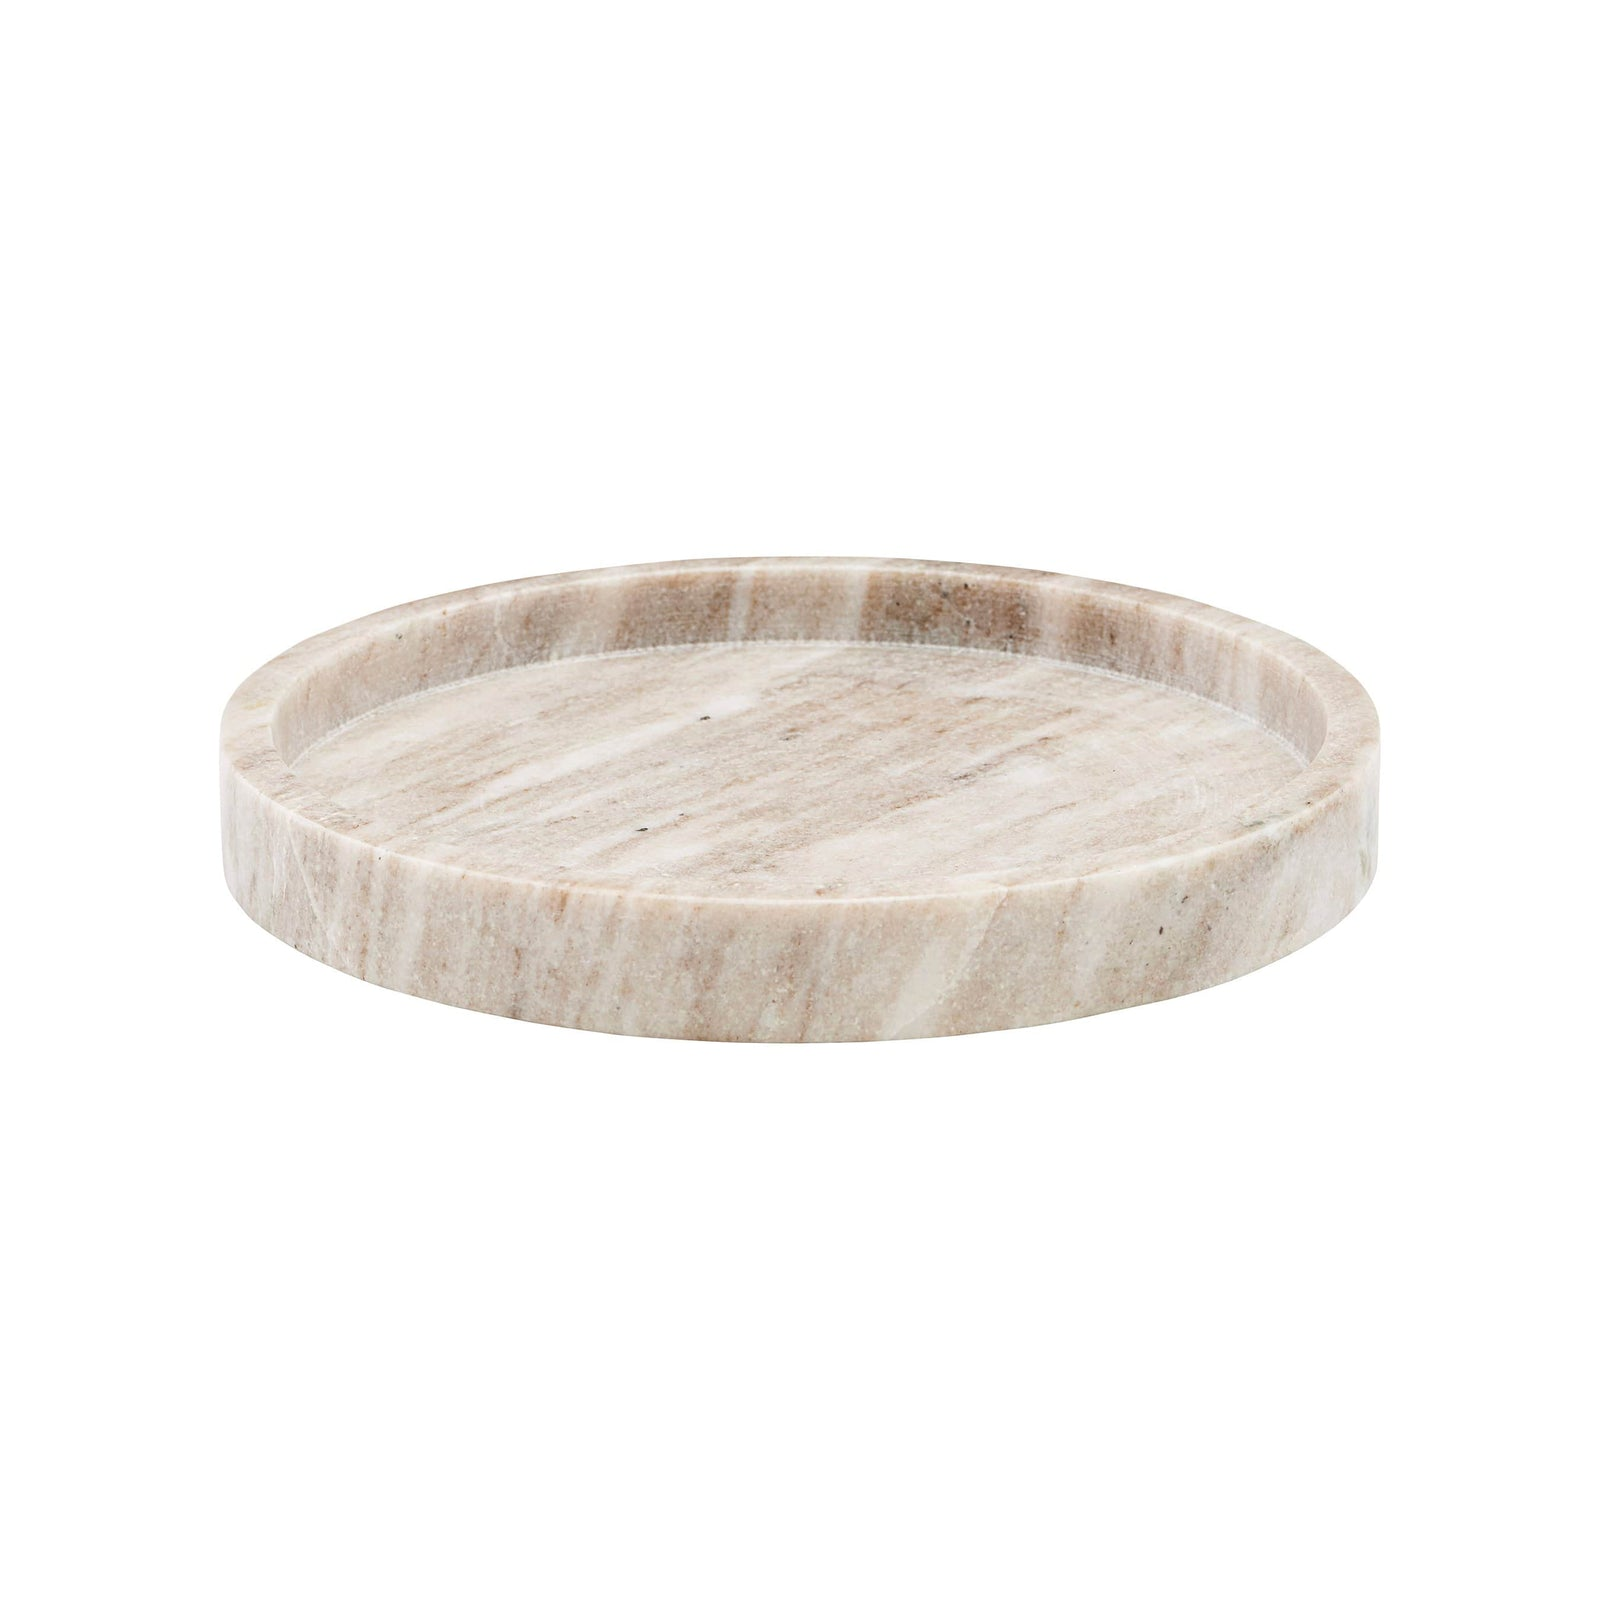 Meraki Kitchenware Round Beige Tray